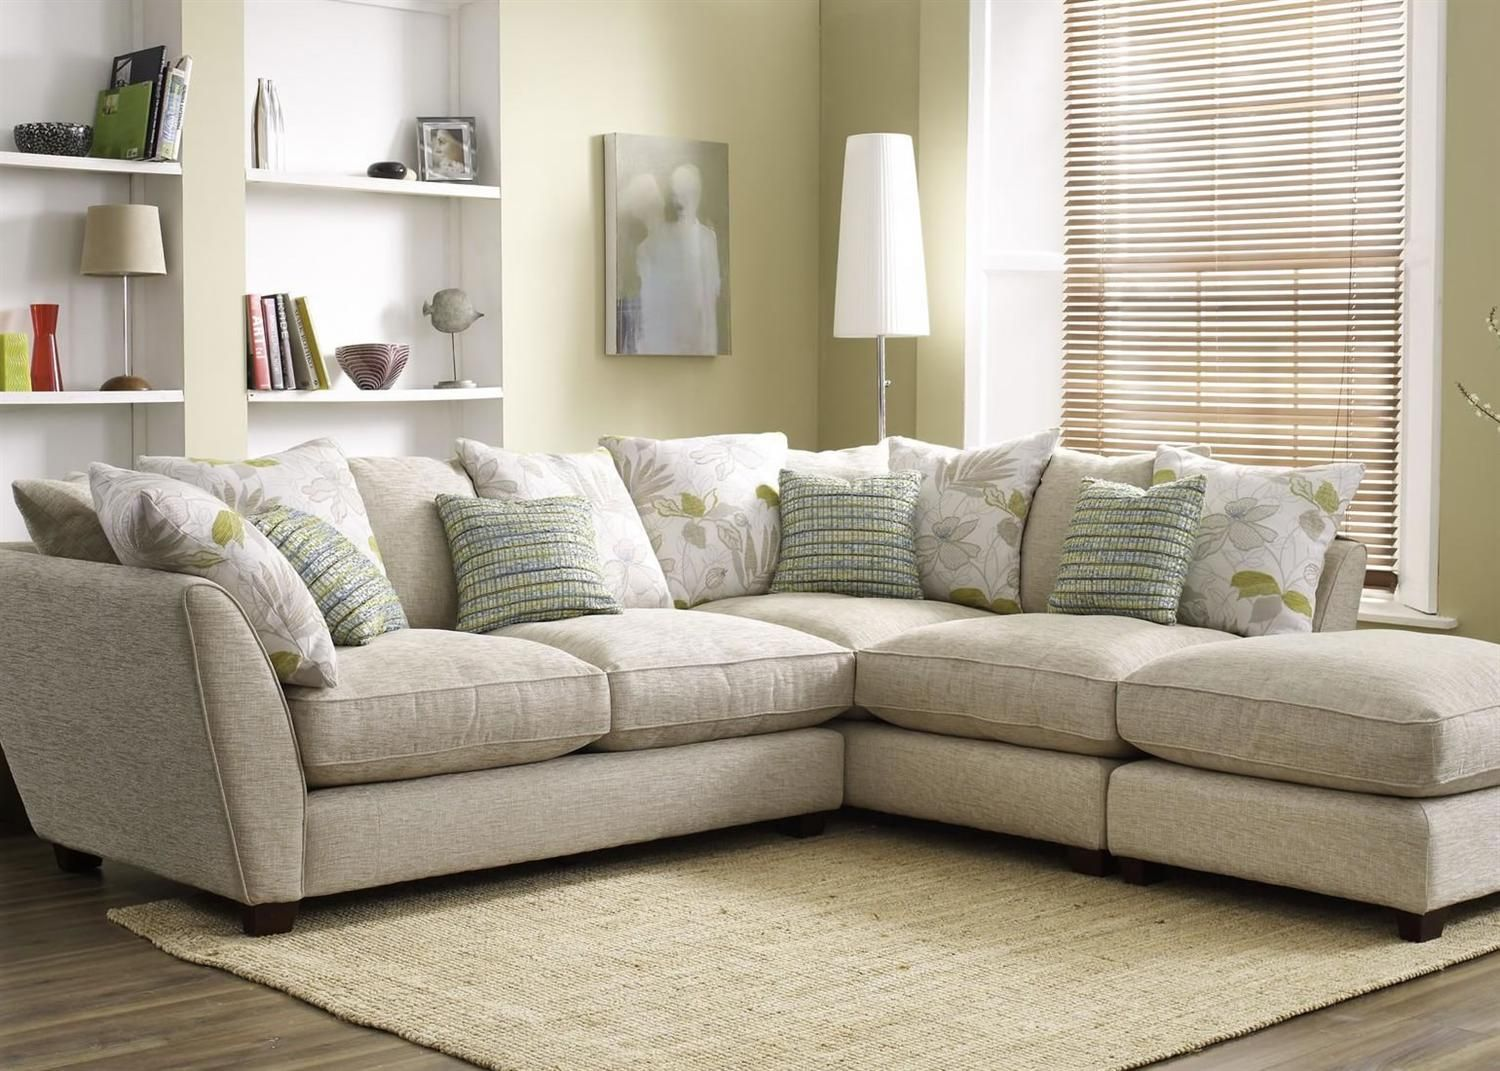 Love Your Home Corner Sofa Small Sleeper Ashwood Fuji Collection From George Tannahill